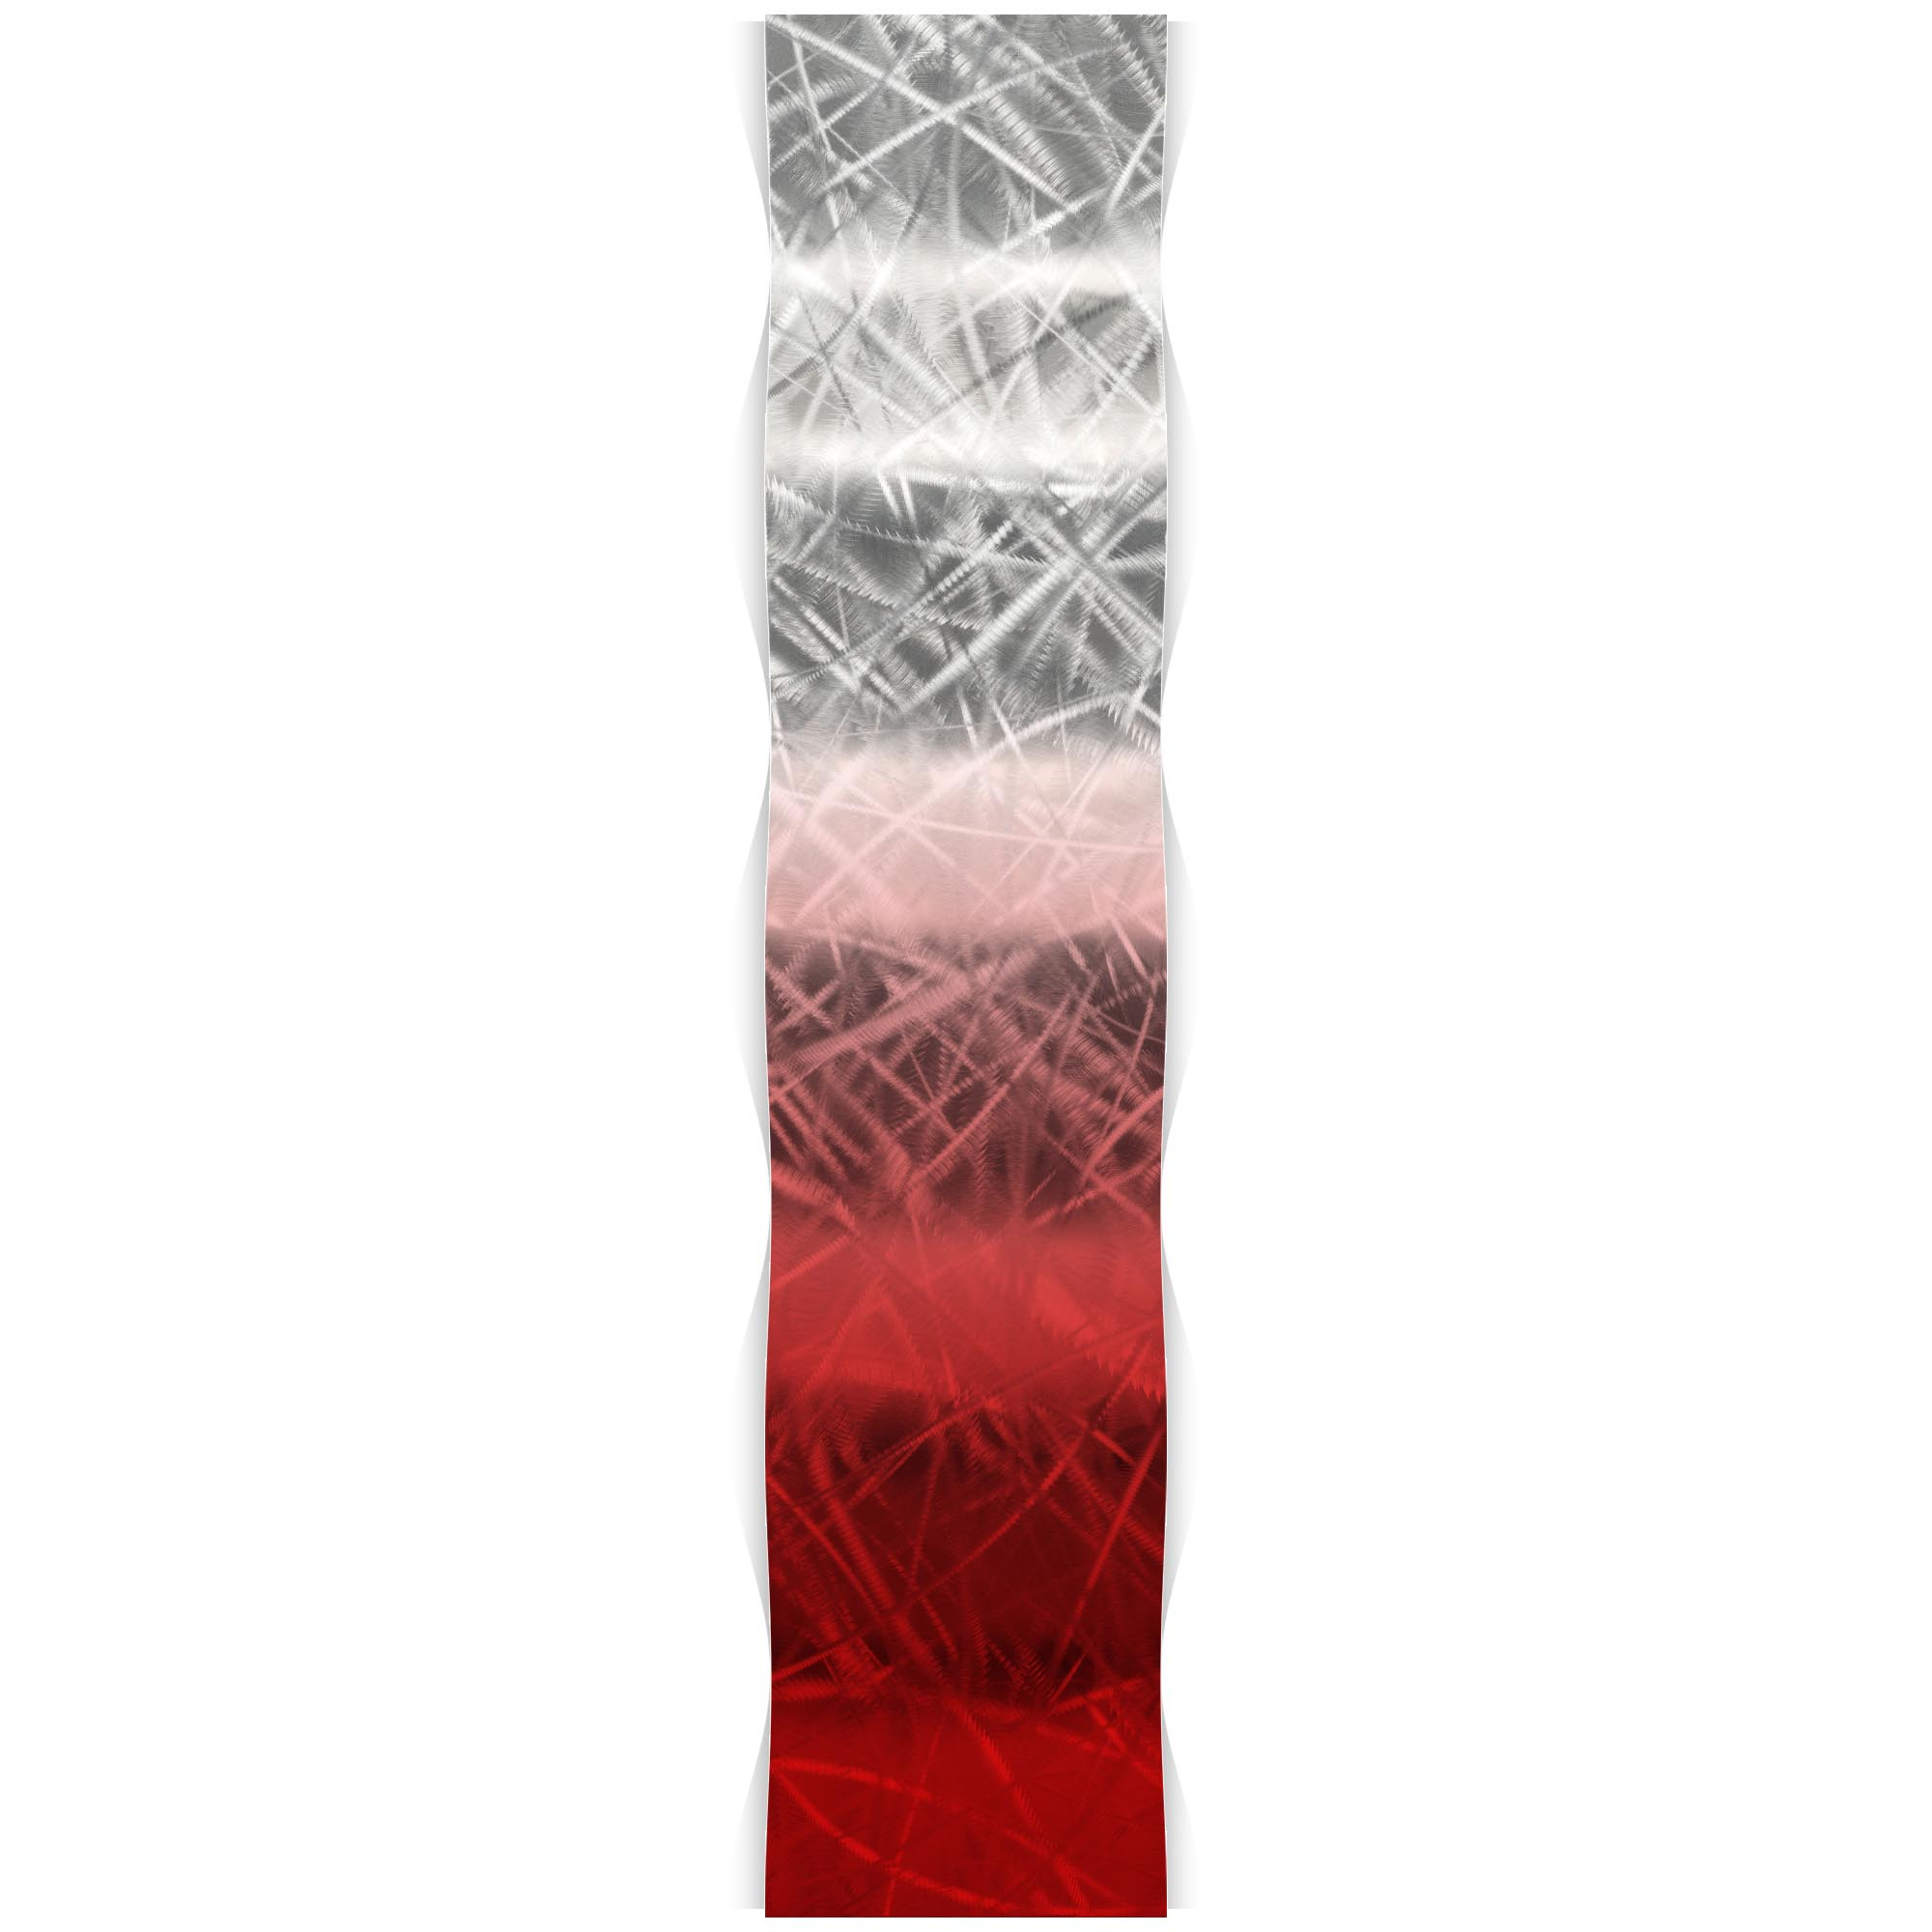 Helena Martin 'Red Fade Wave' 9.5in x 44in Original Abstract Metal Art on Ground and Painted Metal